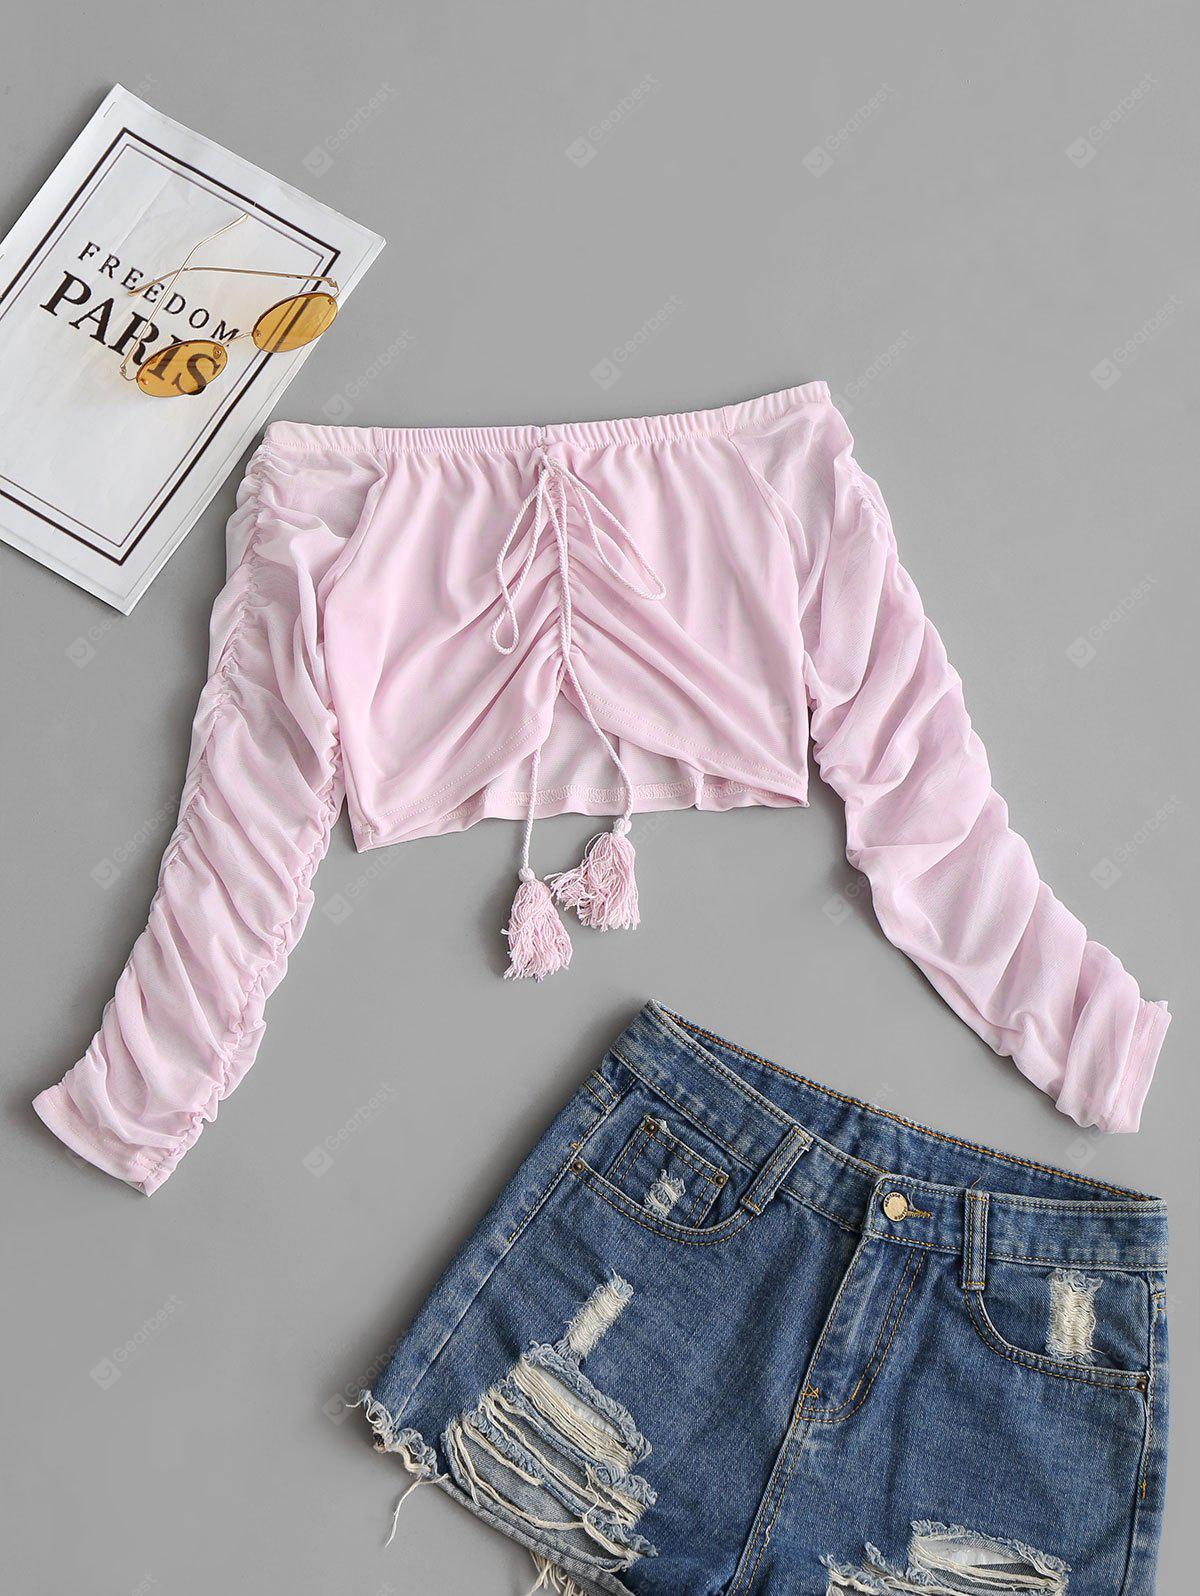 SHALLOW PINK, Apparel, Women's Clothing, Blouses